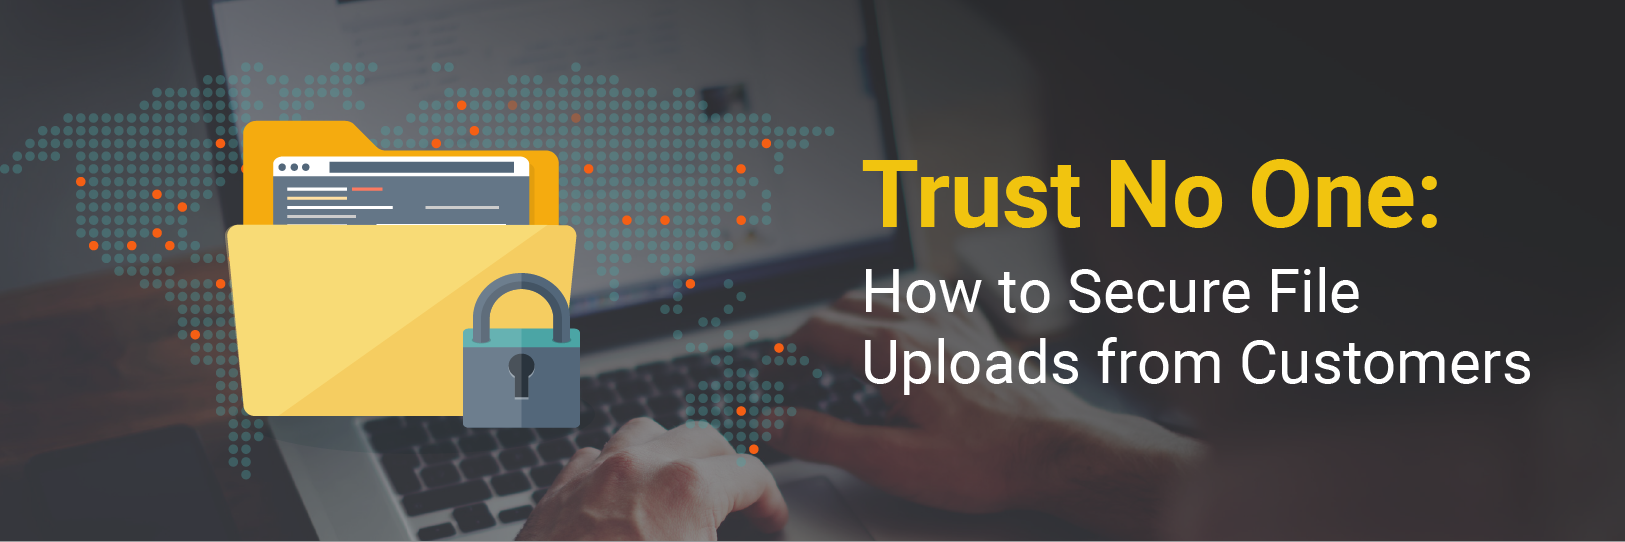 Trust No One: How to Secure File Uploads from Customers